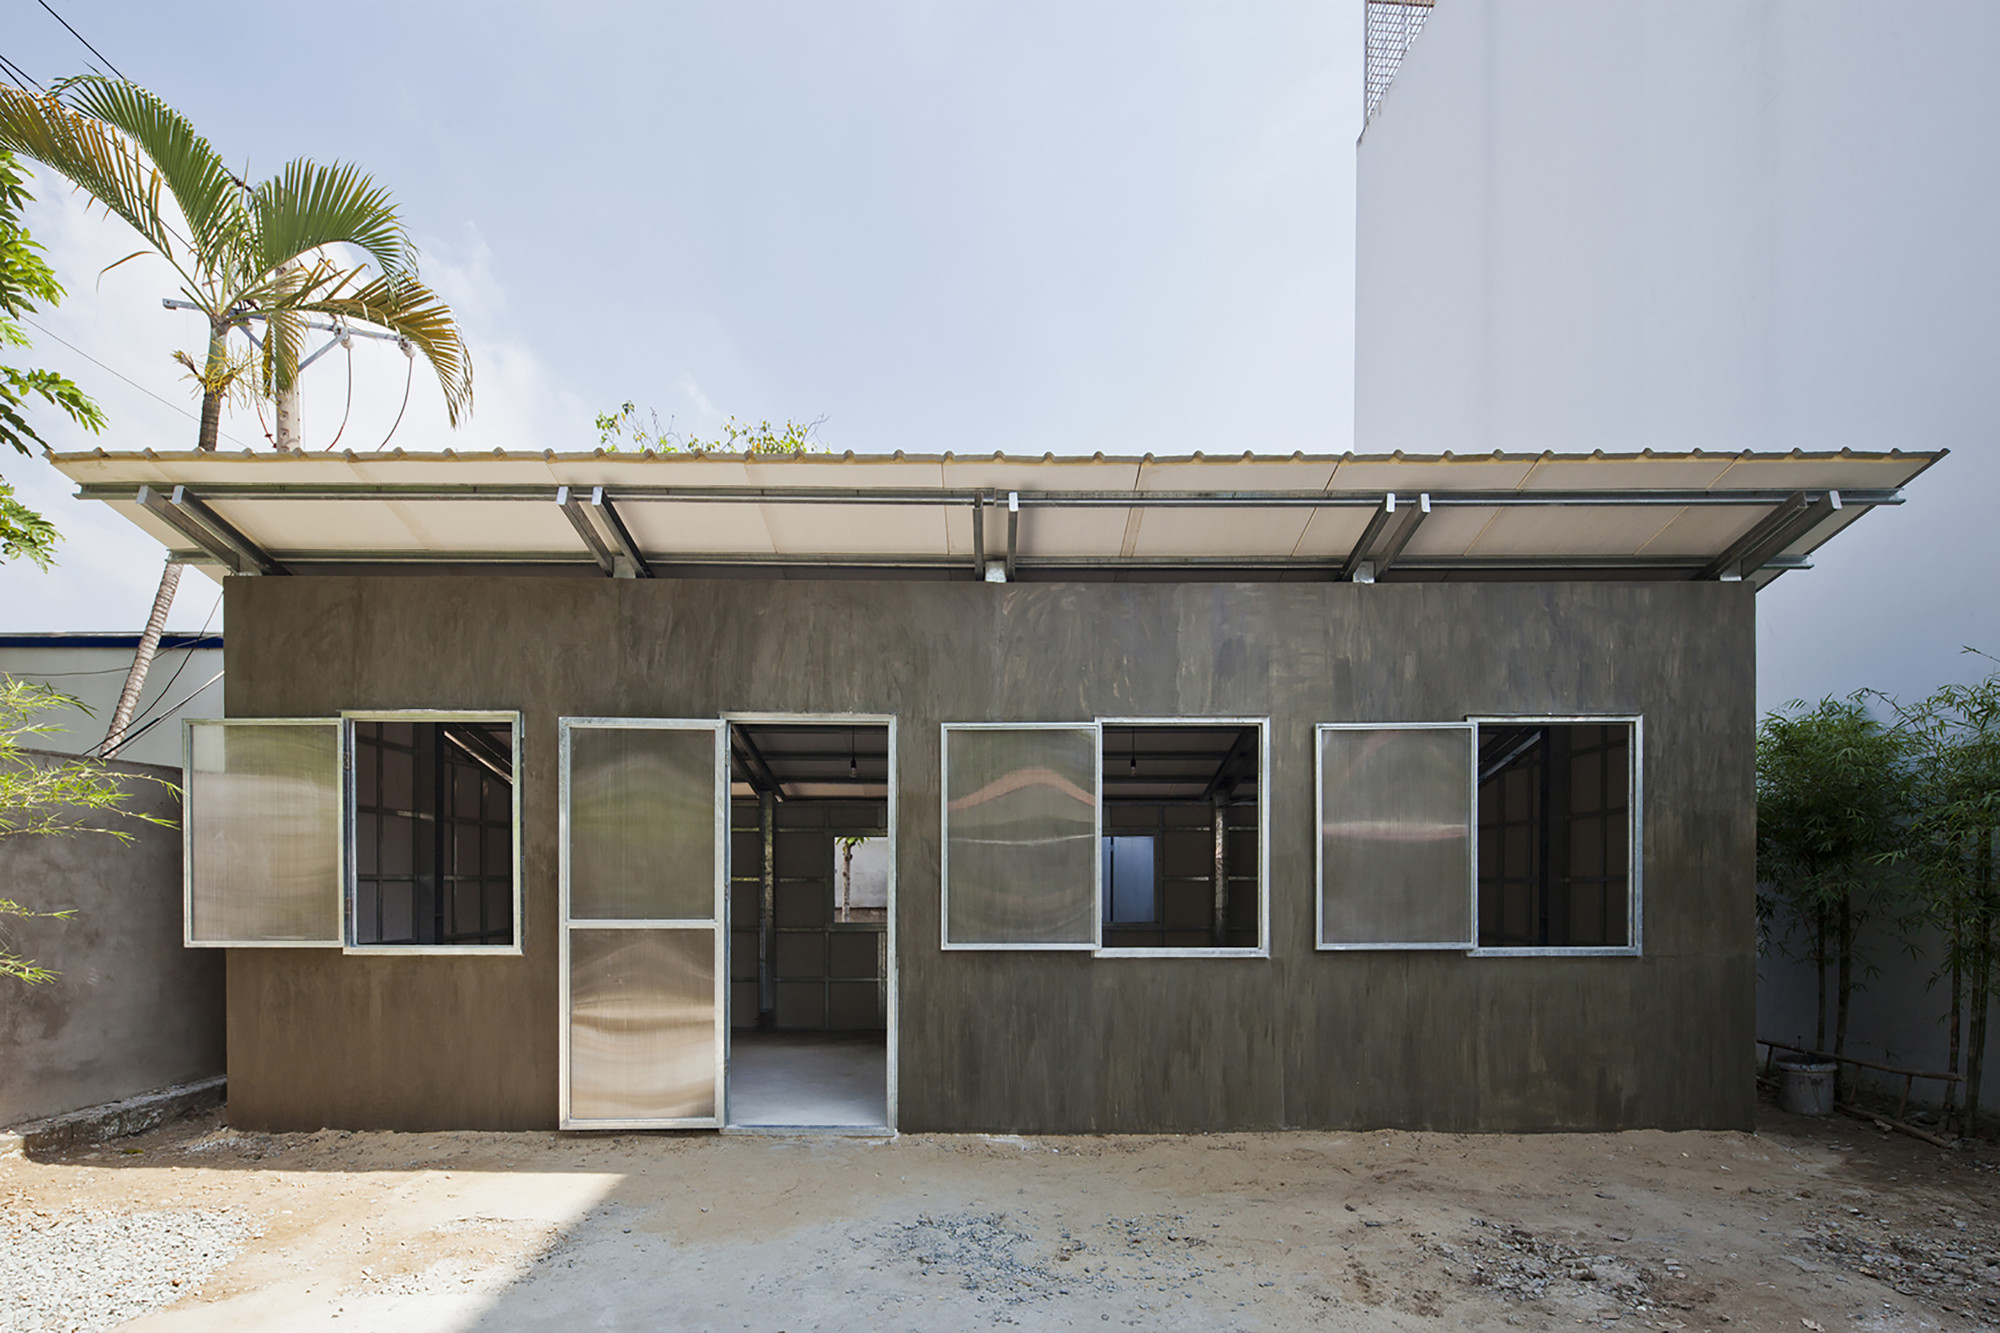 S House 3 Vo Trong Nghia Architects Archdaily